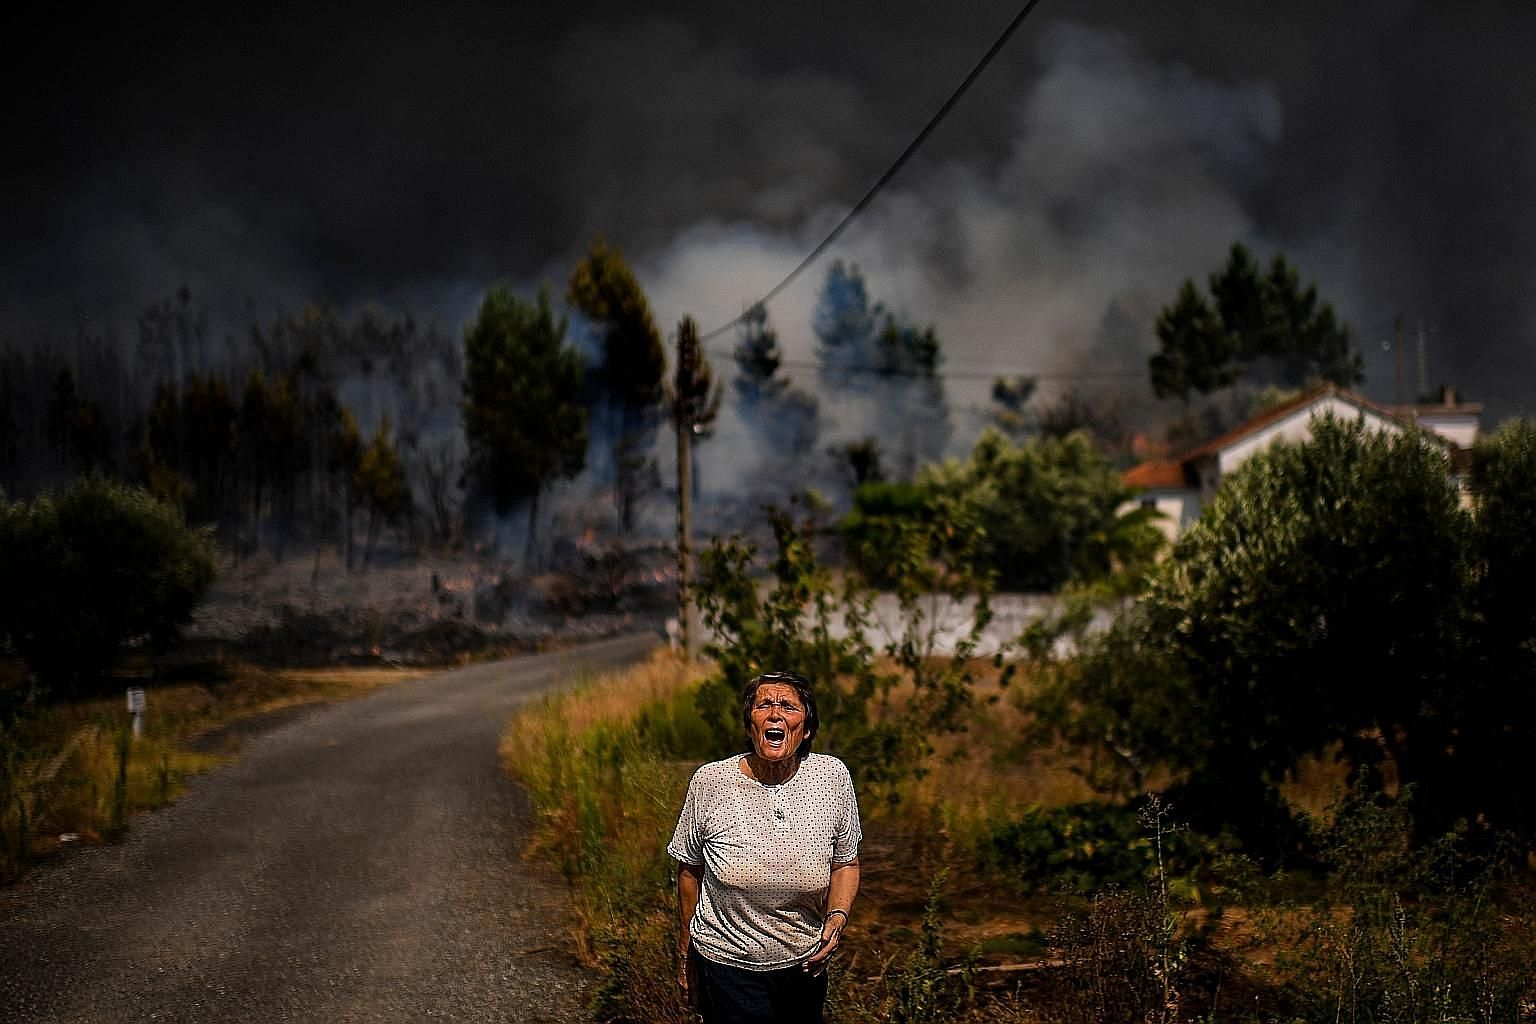 A villager shouting for help as a wildfire approached a house at Casas da Ribeira village in Macao, central Portugal, on Sunday. Fires that swept the mountainous region for nearly 48 hours were under partial control yesterday, but adverse weather con